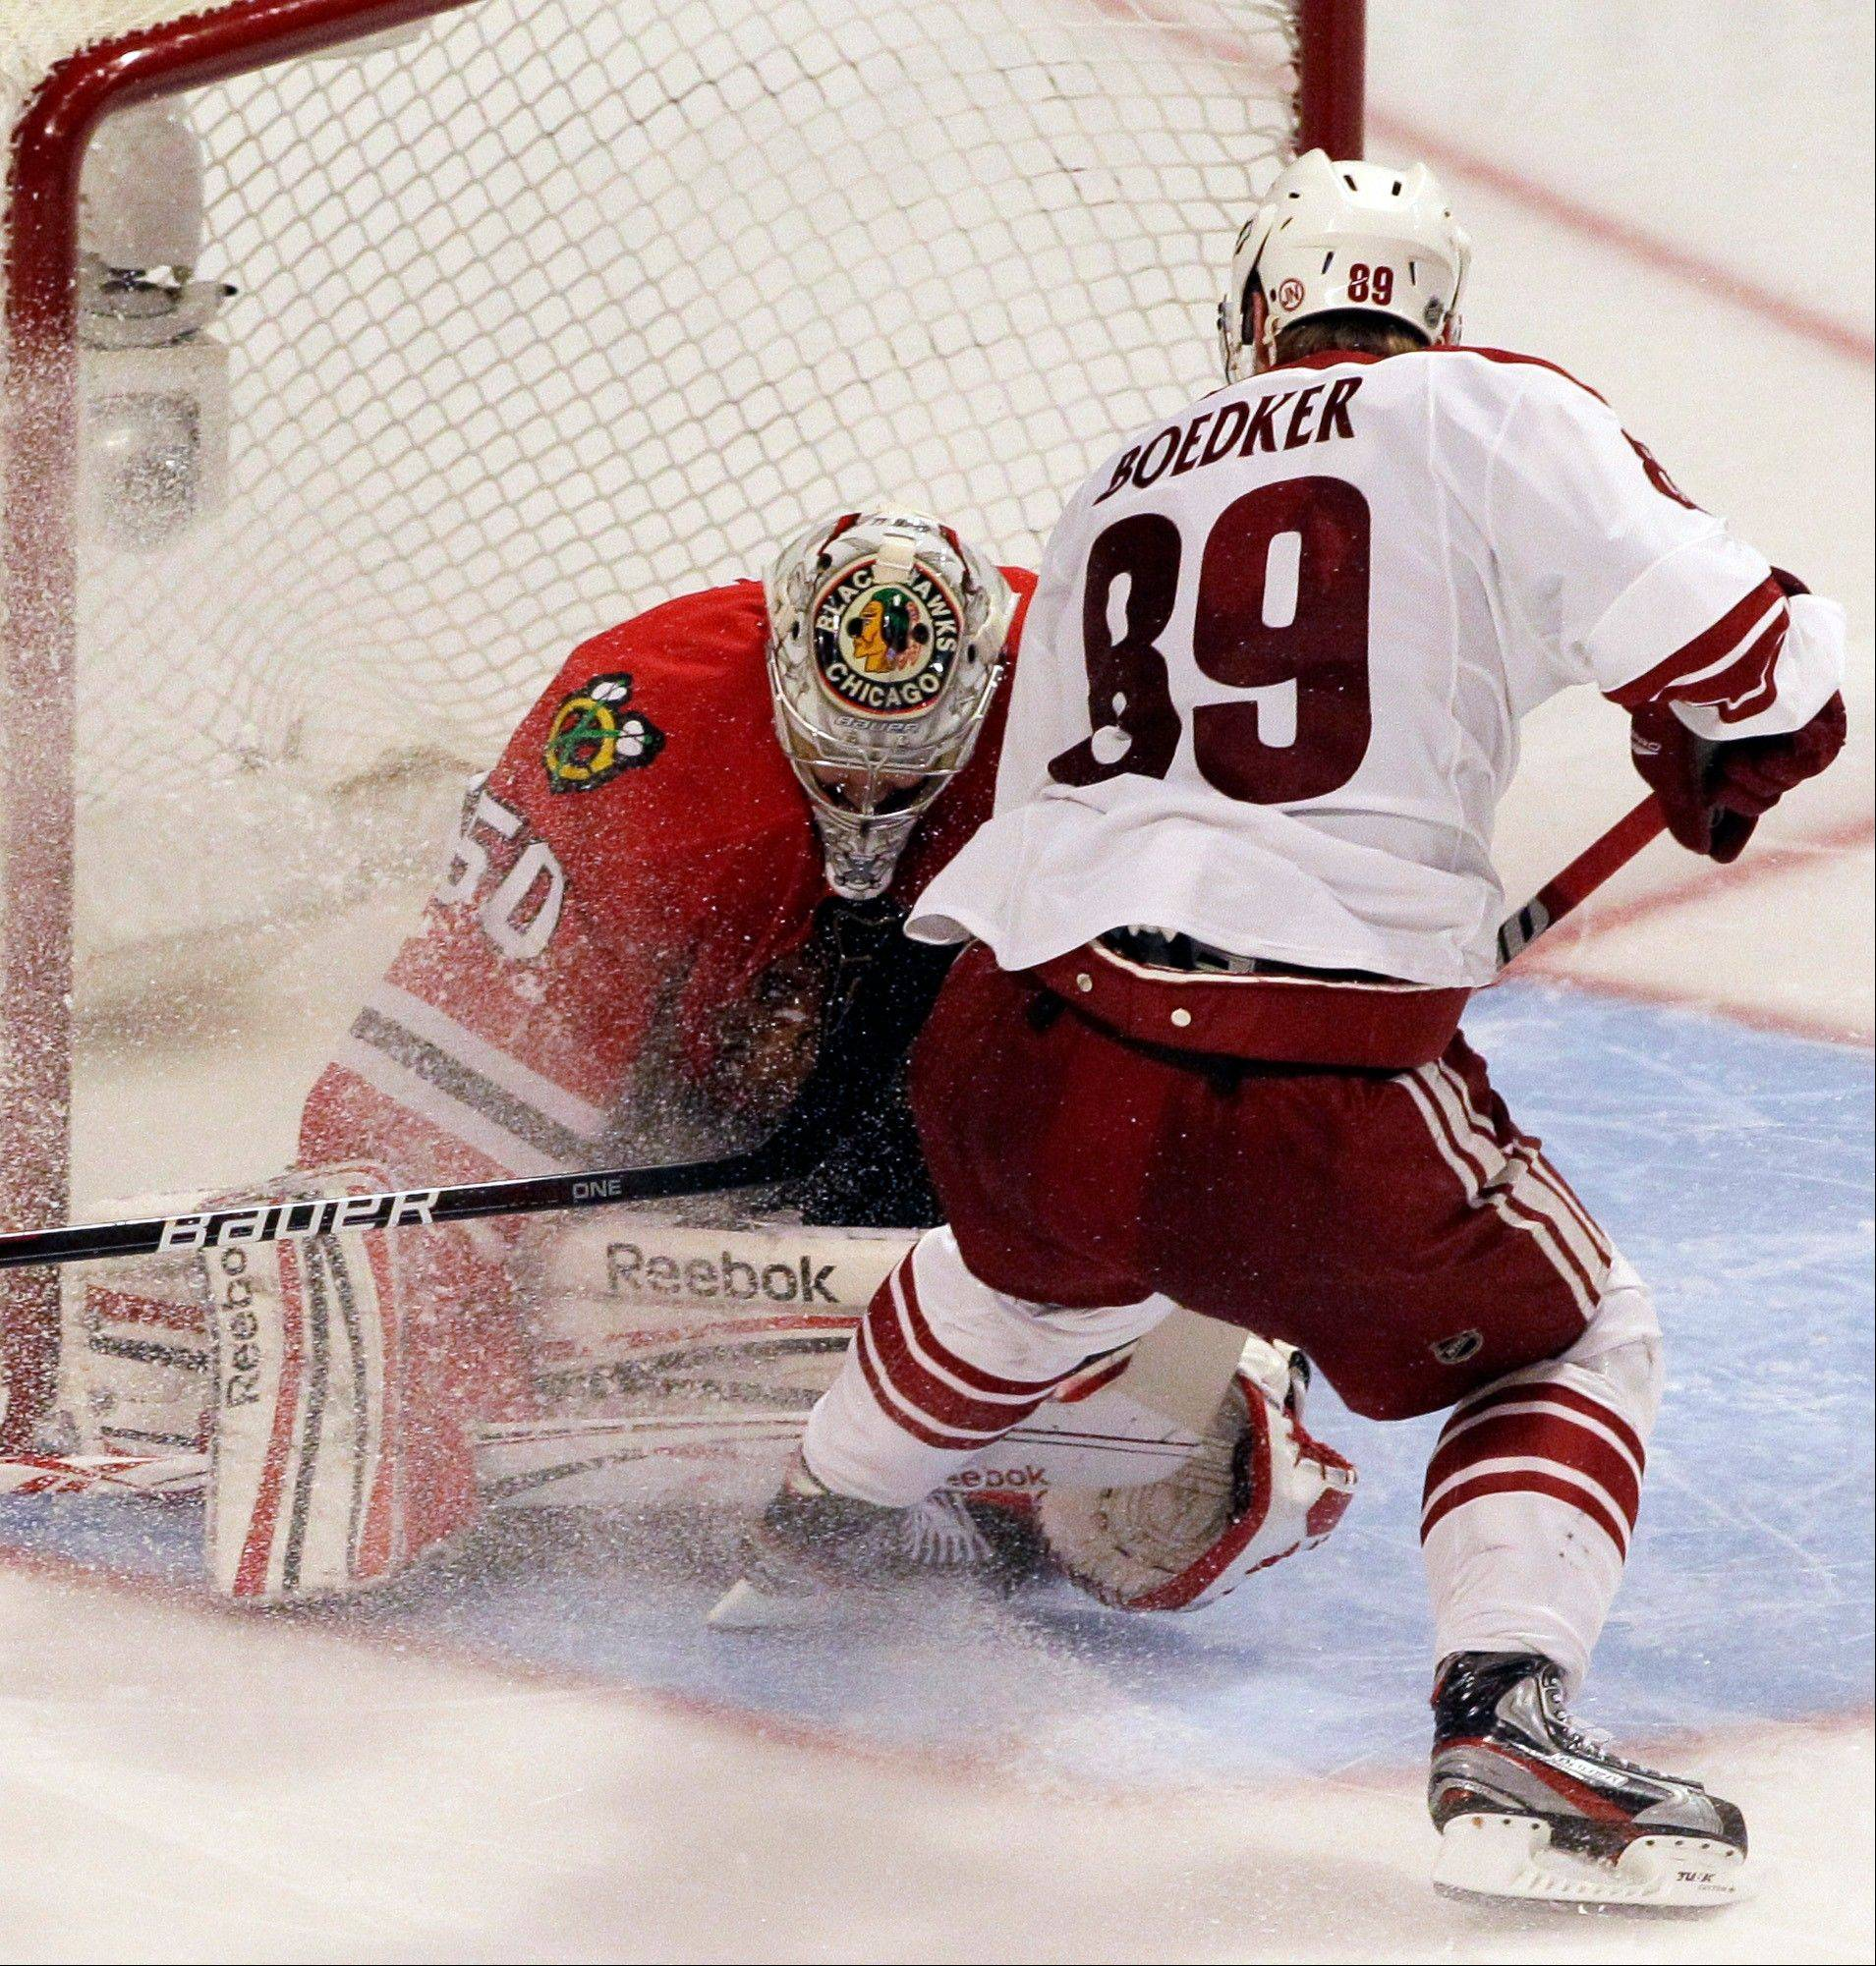 Phoenix Coyotes' Mikkel Boedker (89) scores the game-winning goal against Chicago Blackhawks goalie Corey Crawford (50) during the overtime period of Game 4 of an NHL hockey Stanley Cup first-round playoff series in Chicago, Thursday, April 19, 2012. The Coyotes won 3-2.